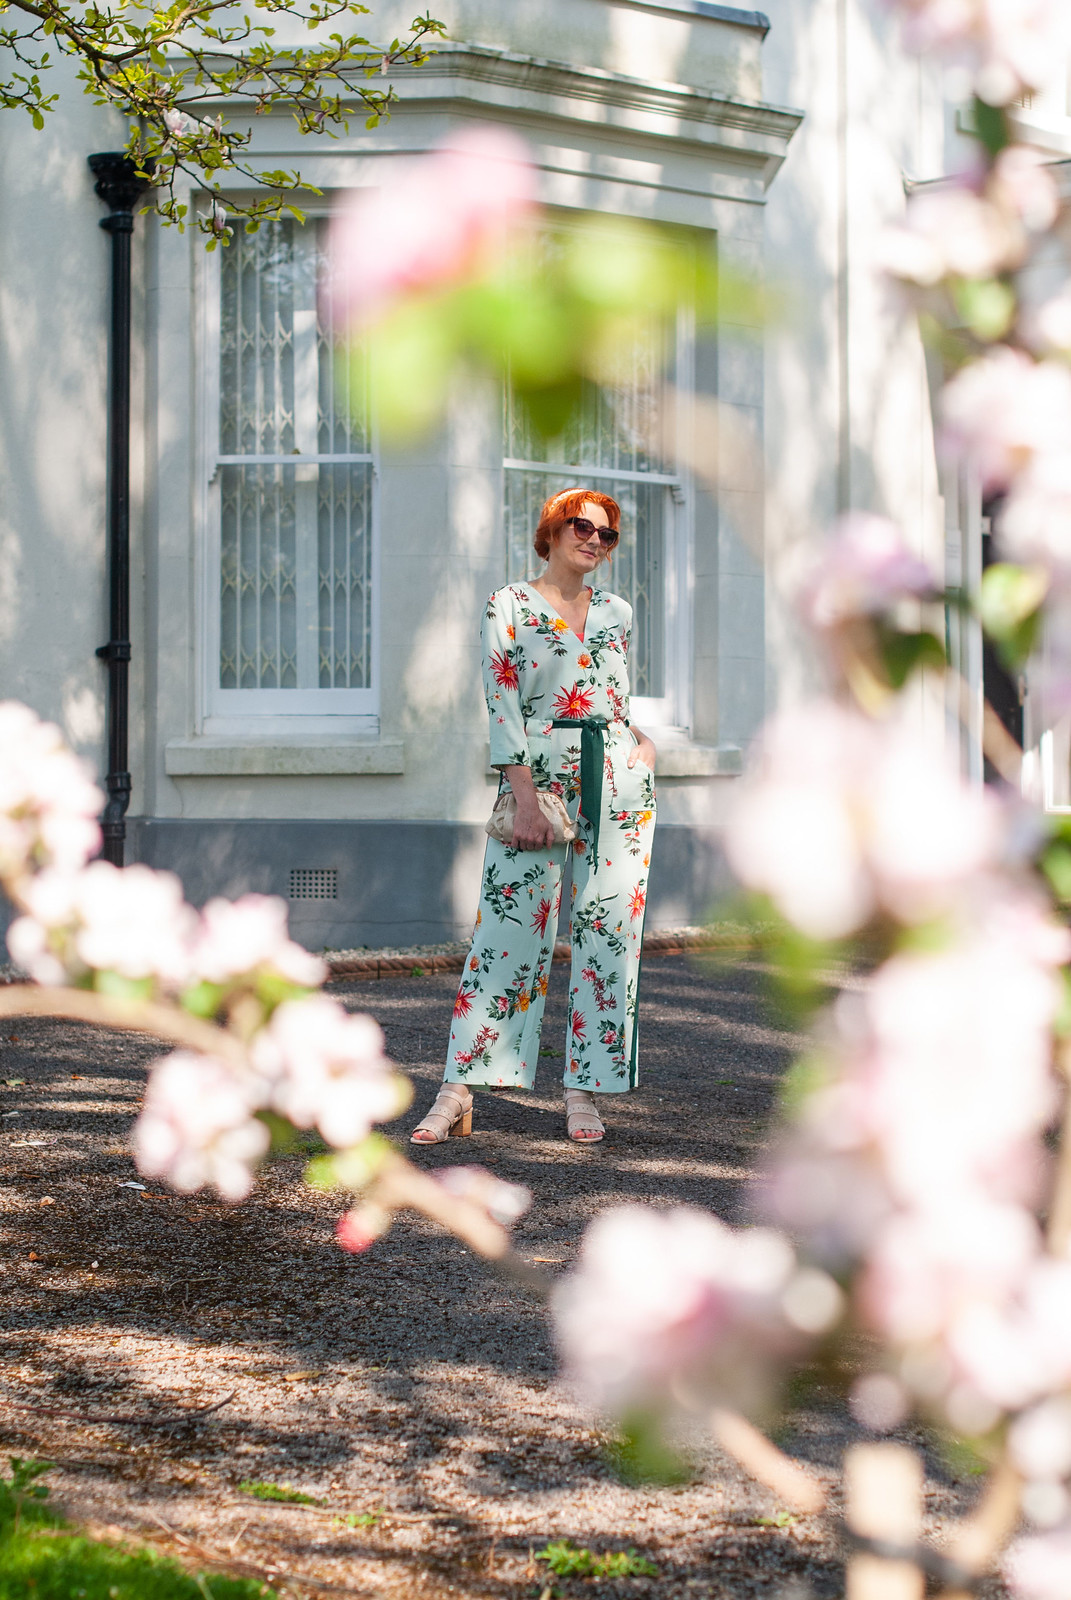 Over 40 Fashion: A Floral Jumpsuit and Nude Sandals For Every Summer Wedding, Garden Party and Event | Not Dressed As Lamb